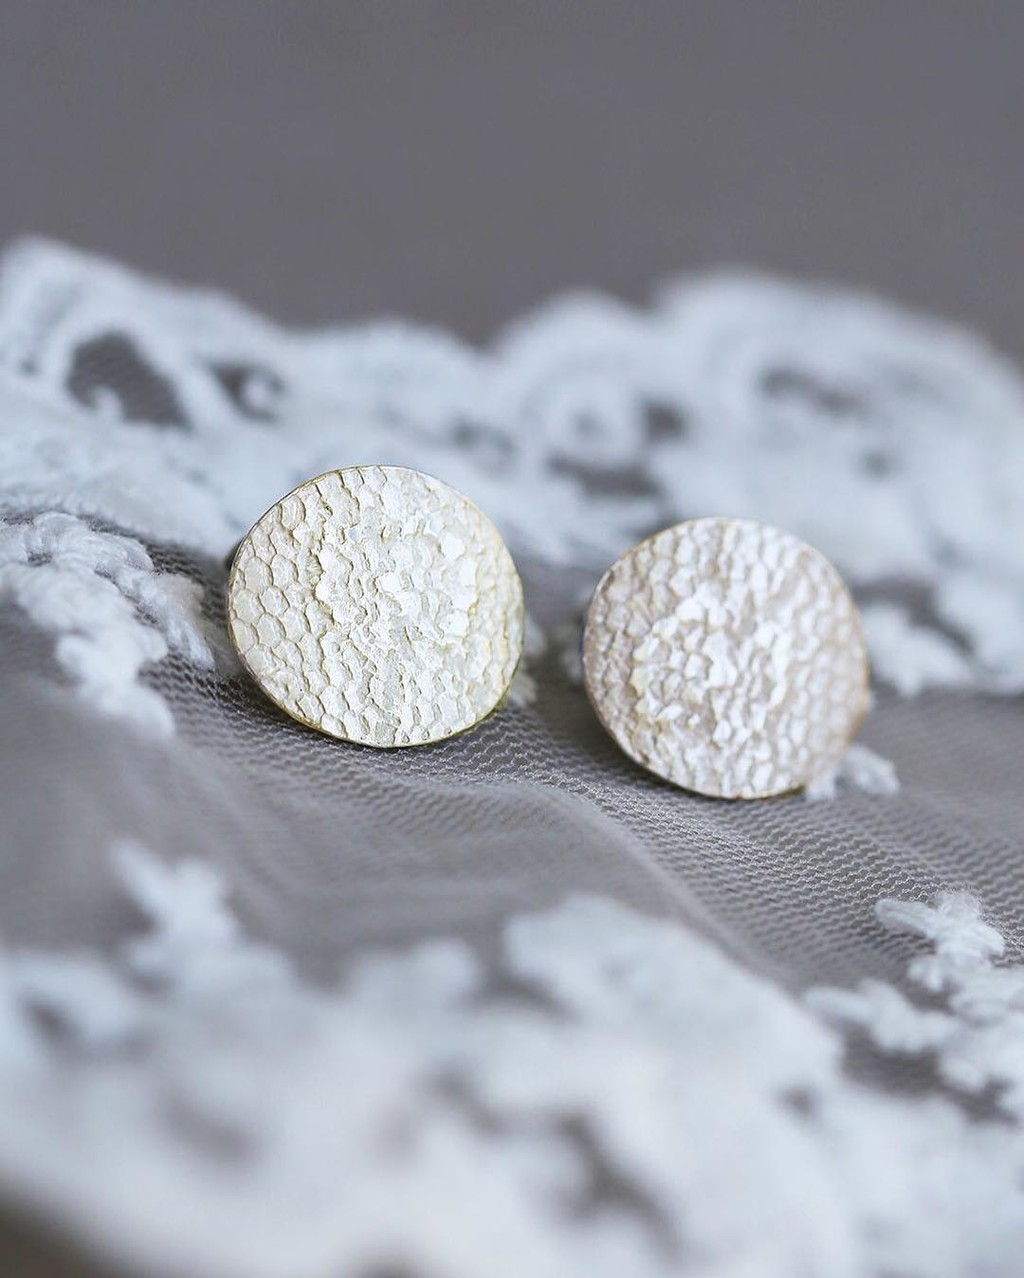 Heirloom Lace Cufflinks for the Groom. Every Mama wants to be a part of her Son's wedding day, take a piece of Mom's gown or veil